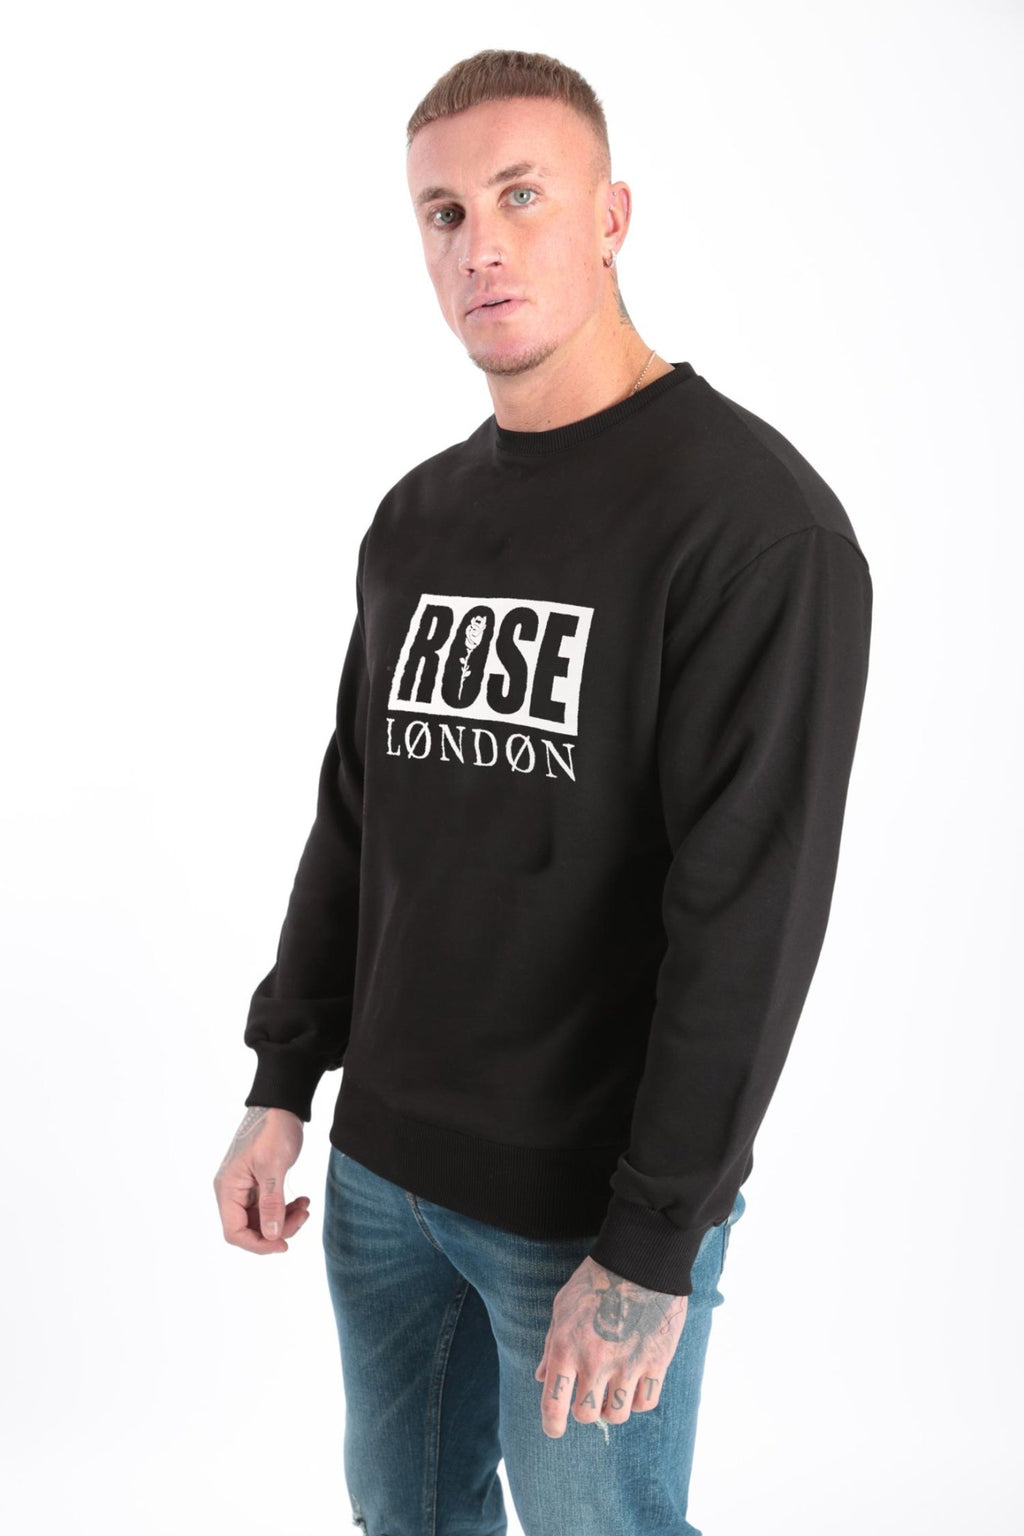 Rose London Box Print Sweatshirt Black - Rose London